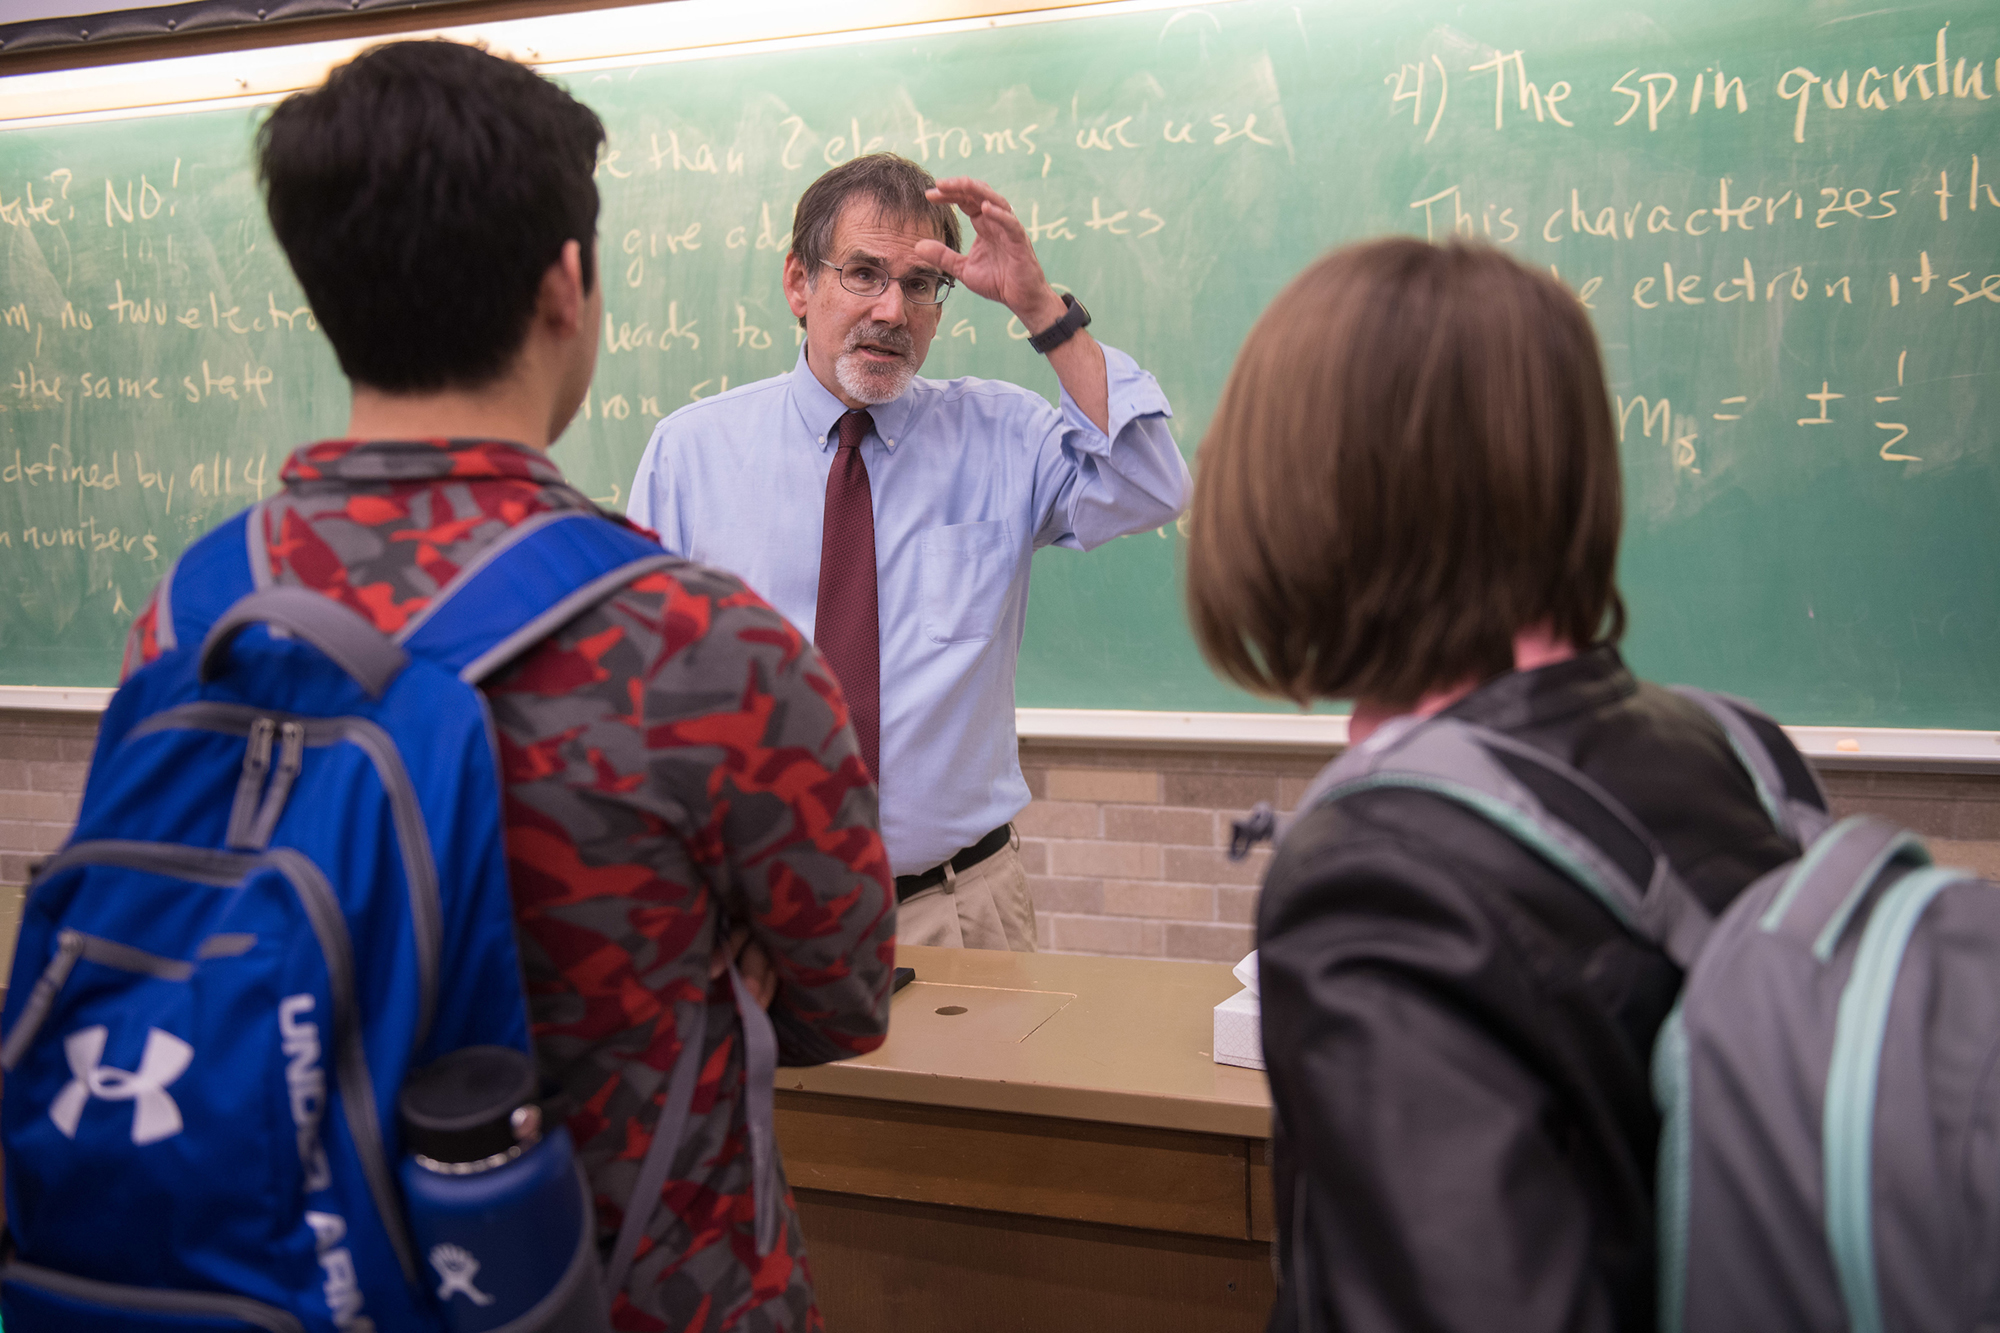 university of iowa professor craig kletzing conversing with two of his students in a classroom